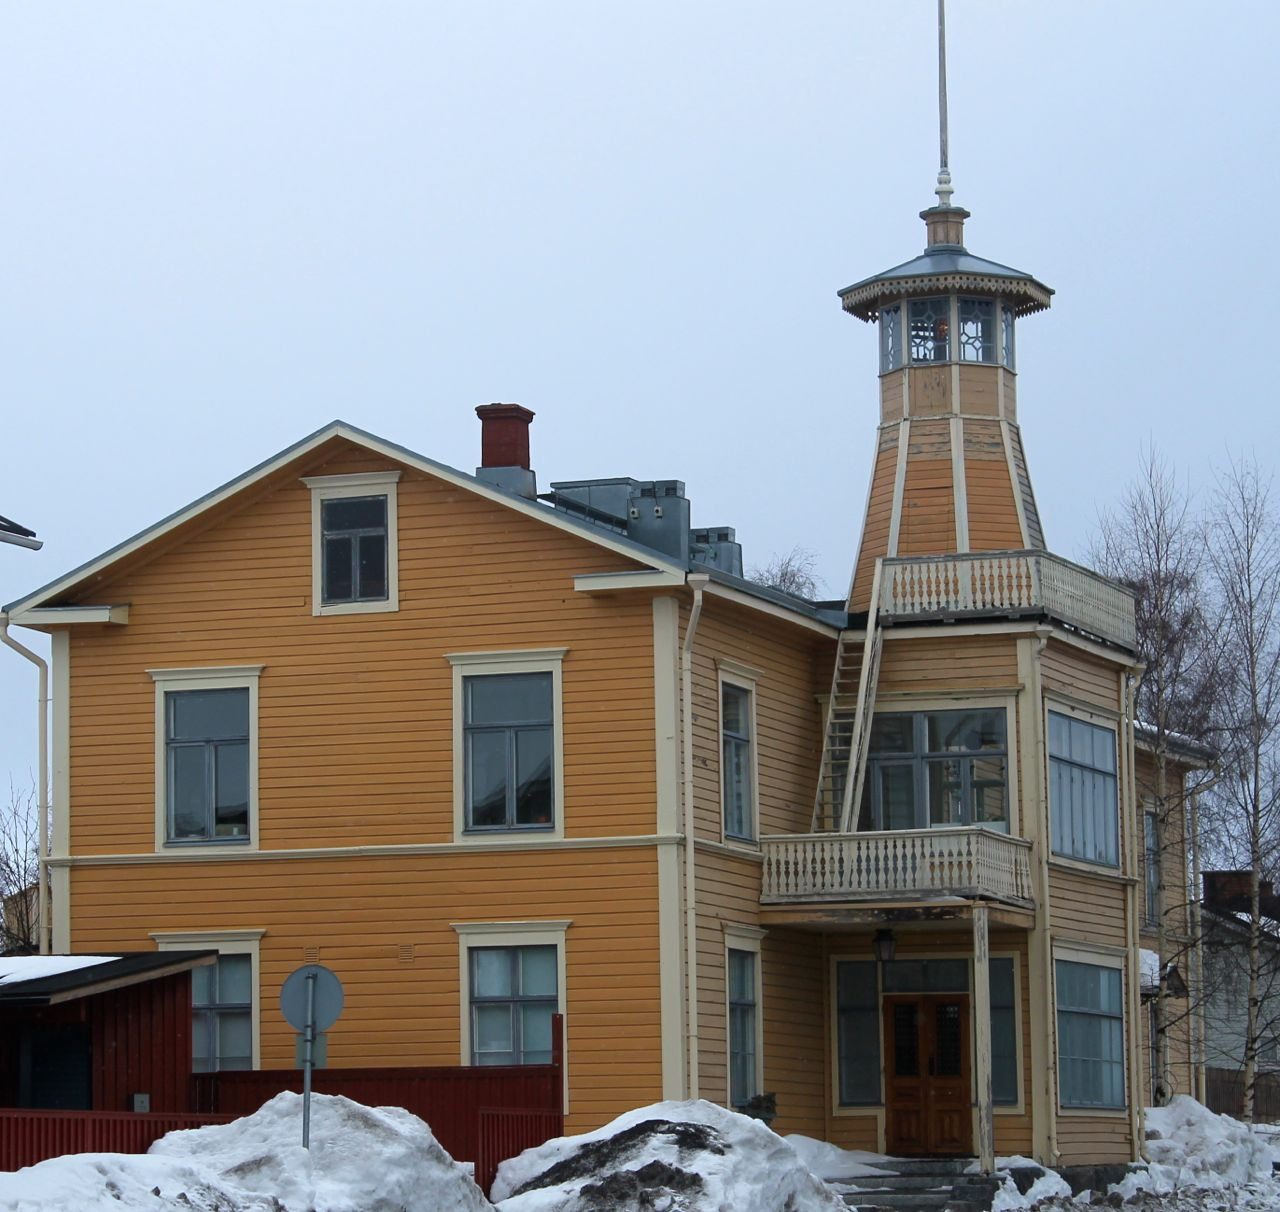 Yellow wood building in Oulu, Finland